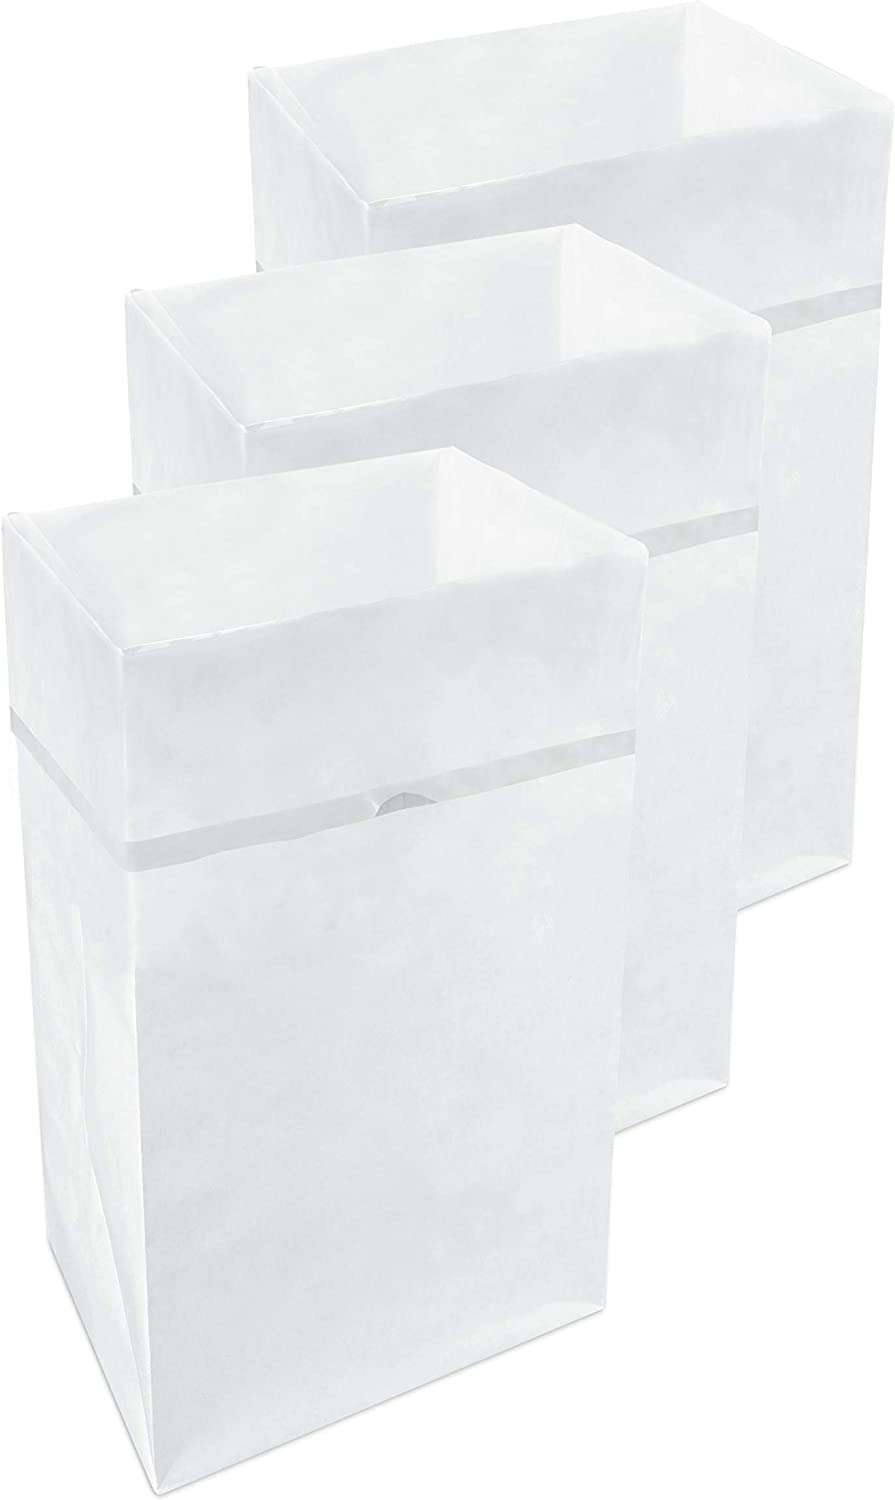 Clean Cubes 30 Gallon Disposable Sanitary Trash Cans & Recycling Bins, 3 Pack (White Pattern)